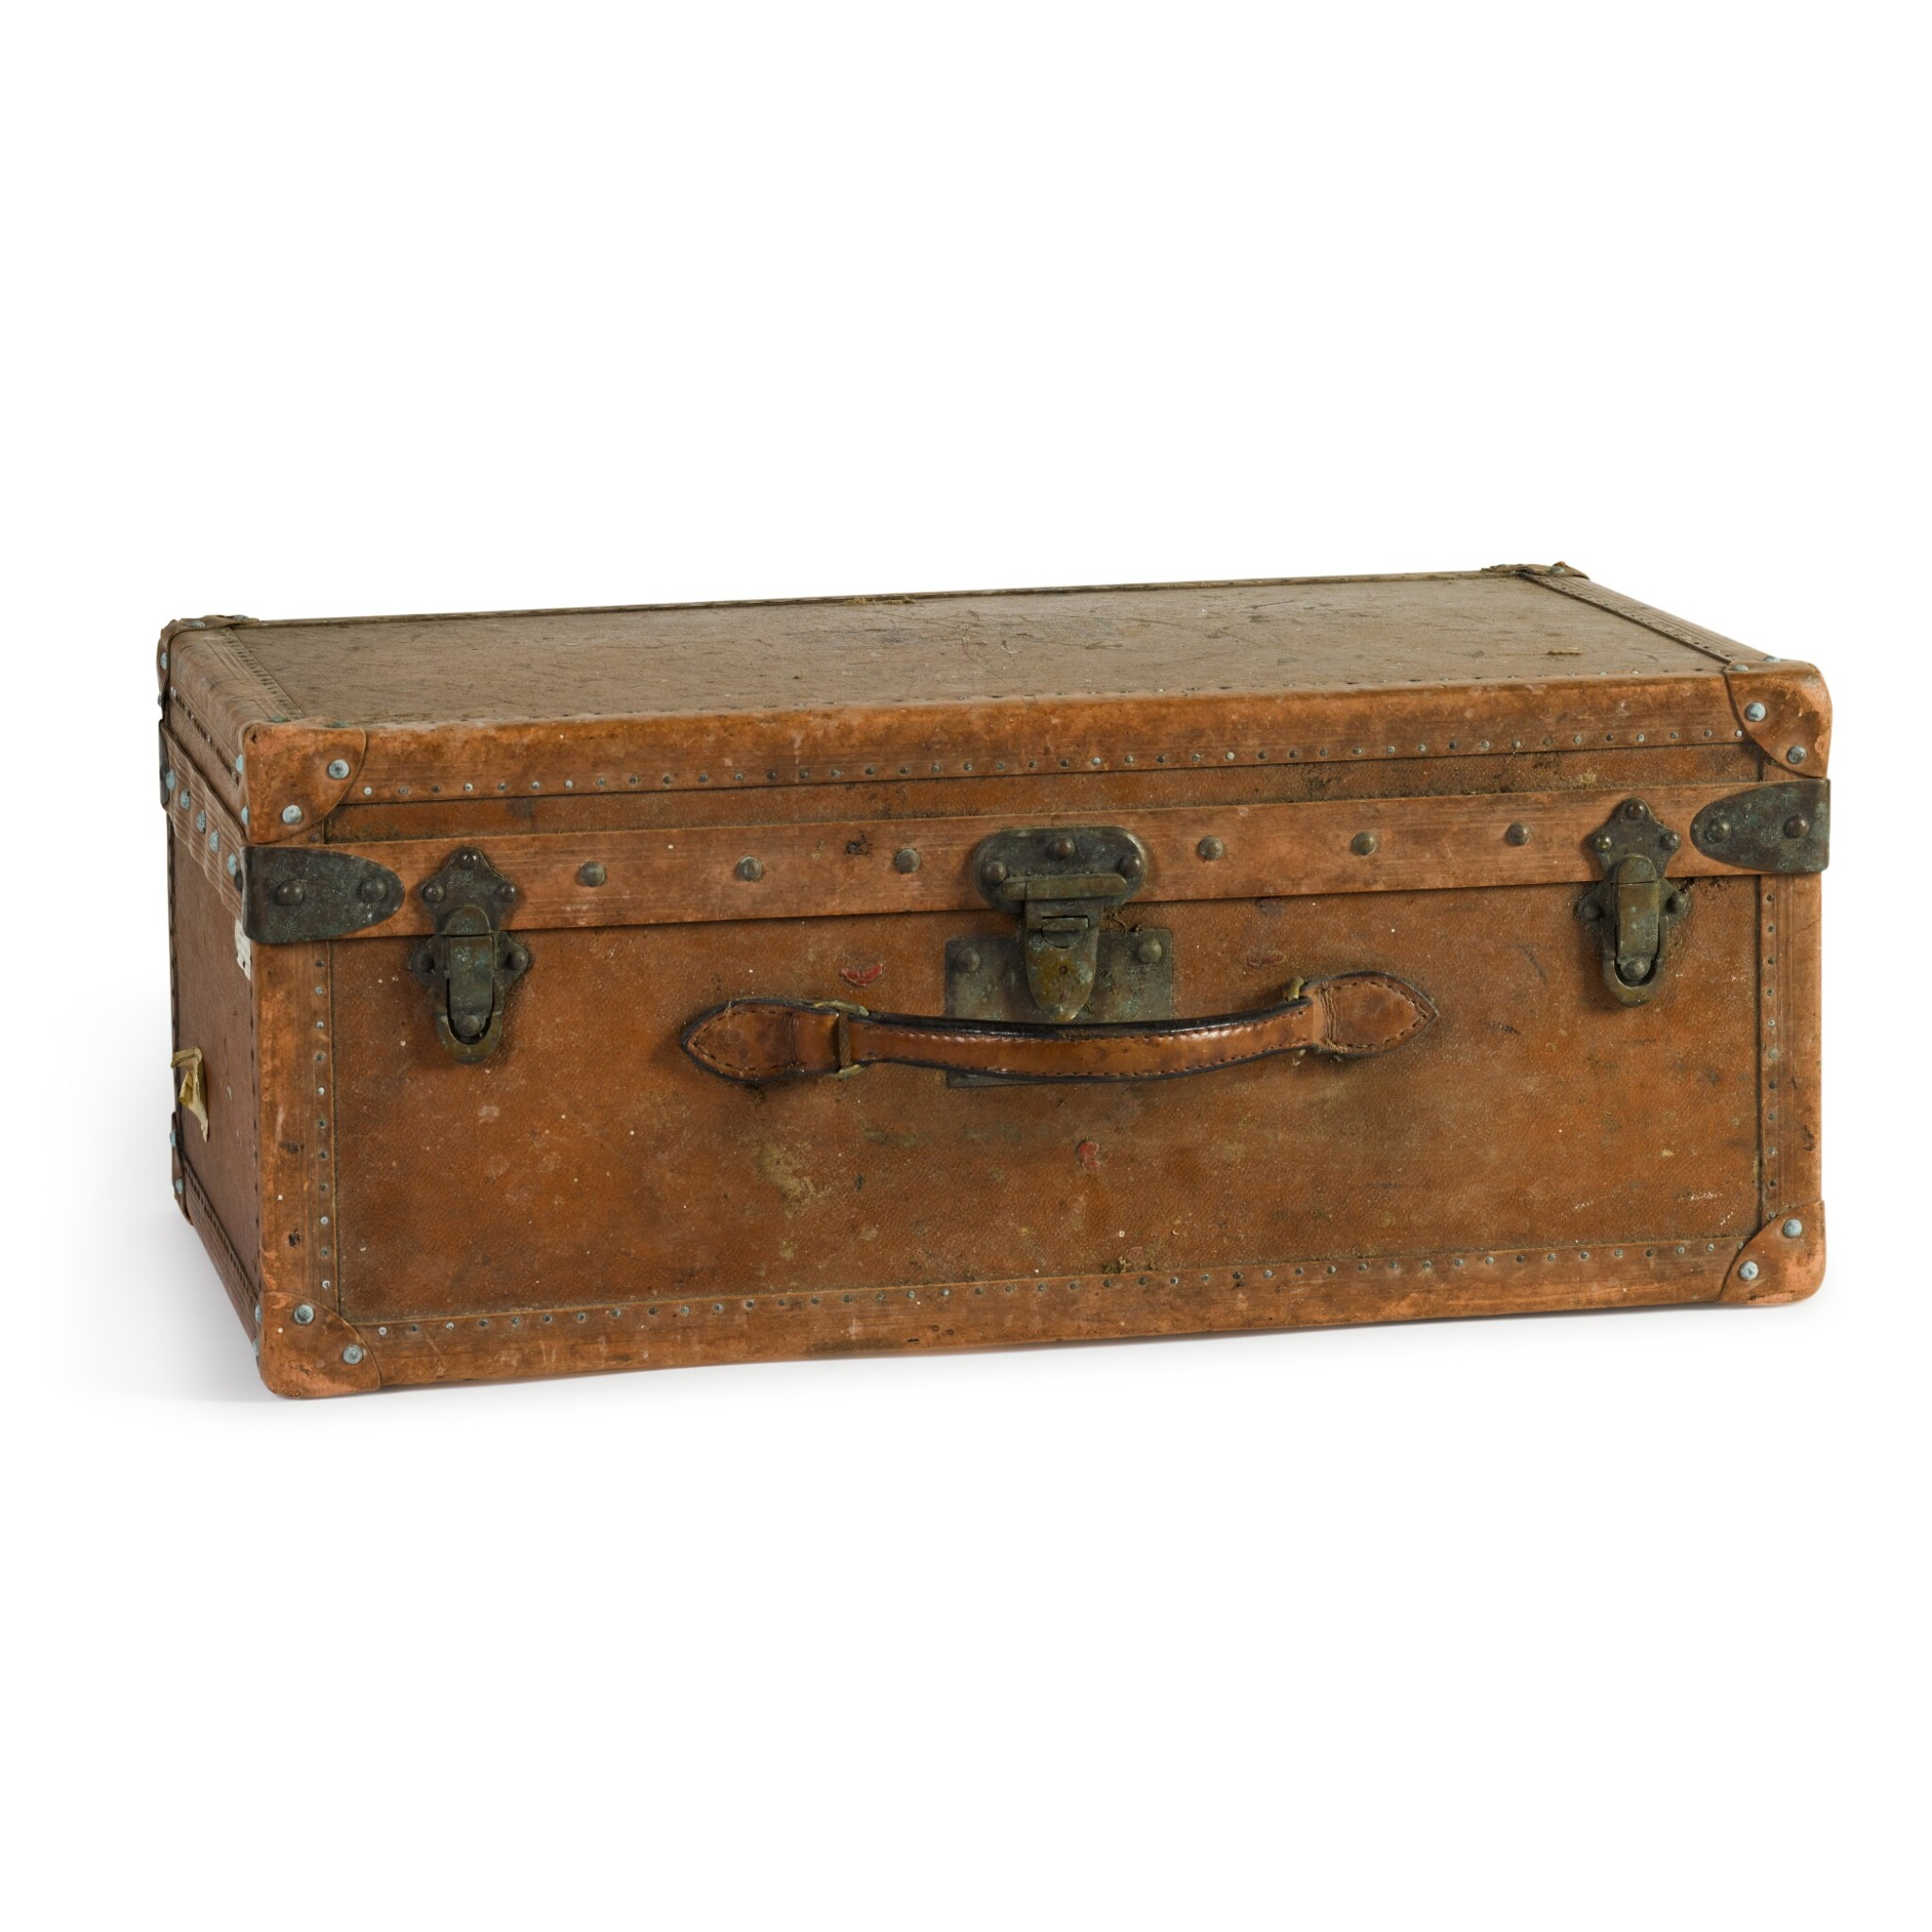 View full screen - View 1 of Lot 46. A French leather travelling case by Goyard of Paris, early 20th century.